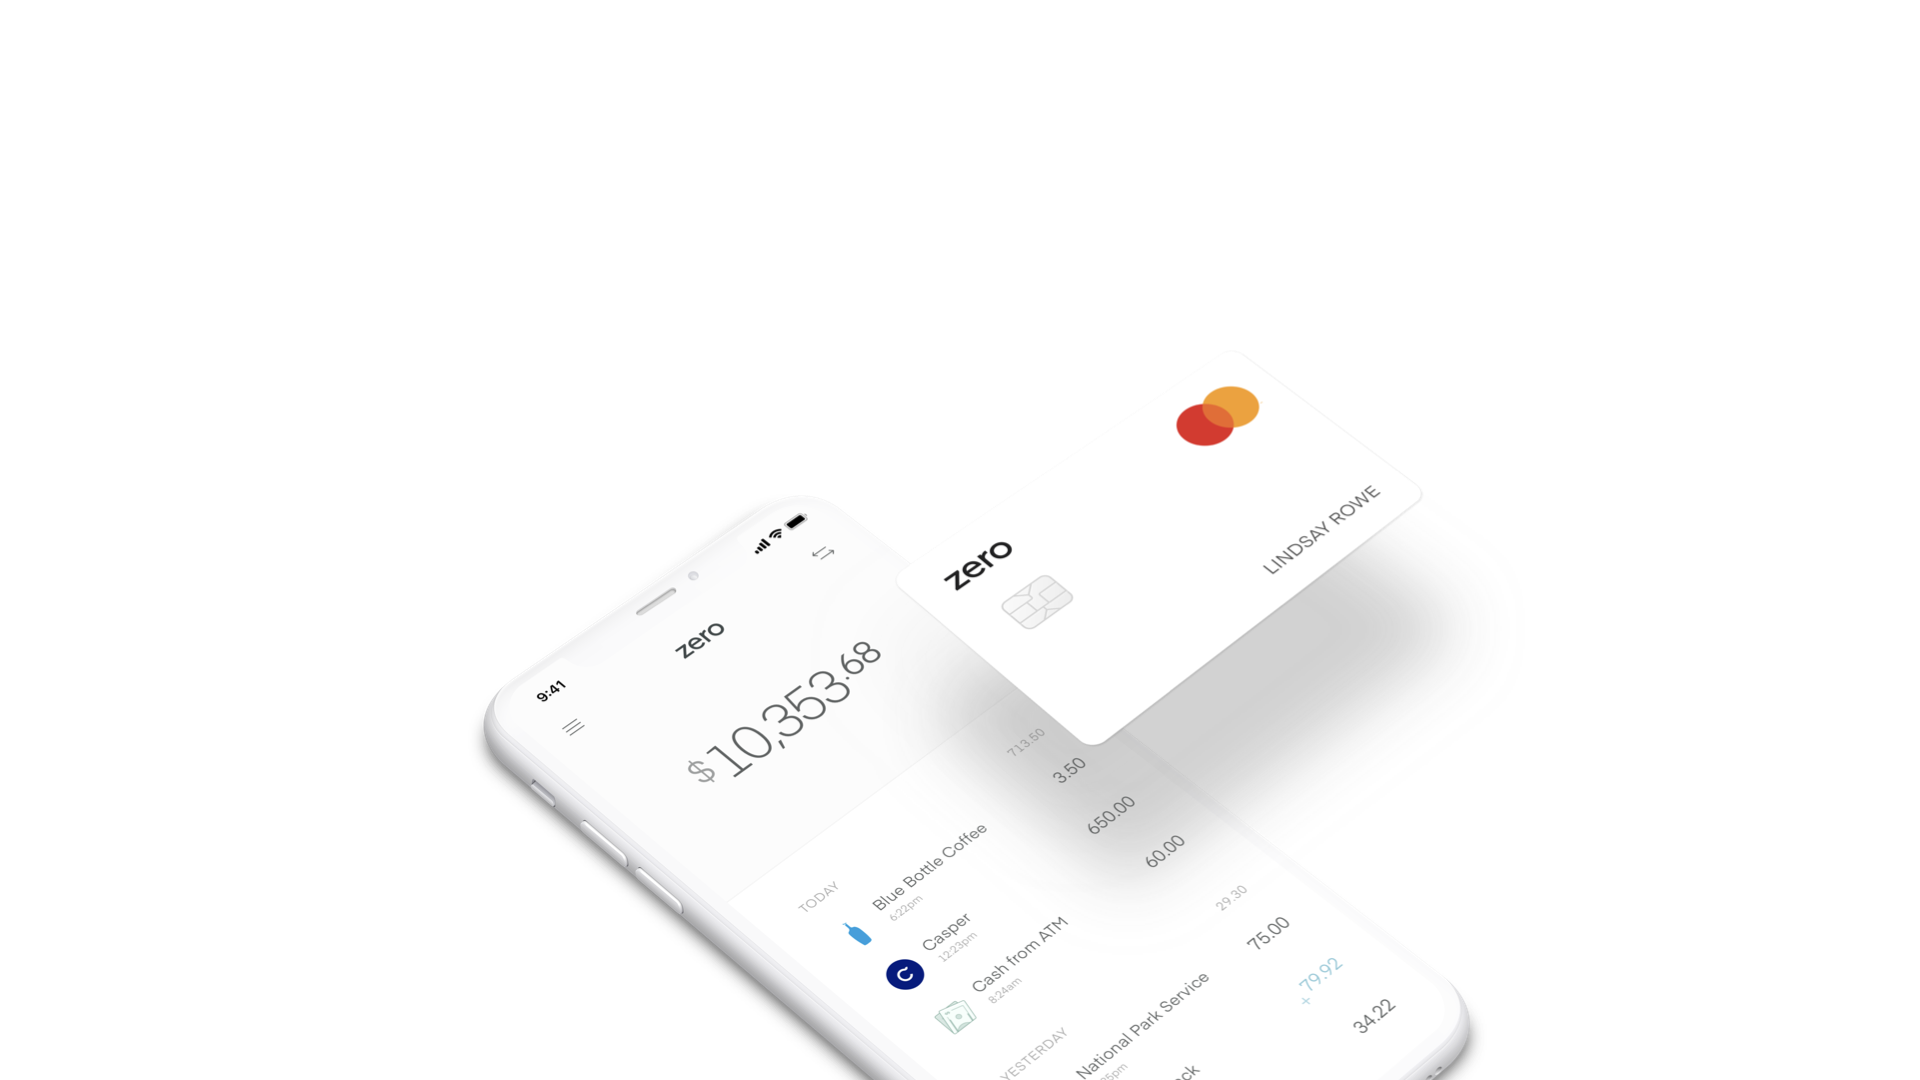 Zero raises $20 million from NEA and others for a credit